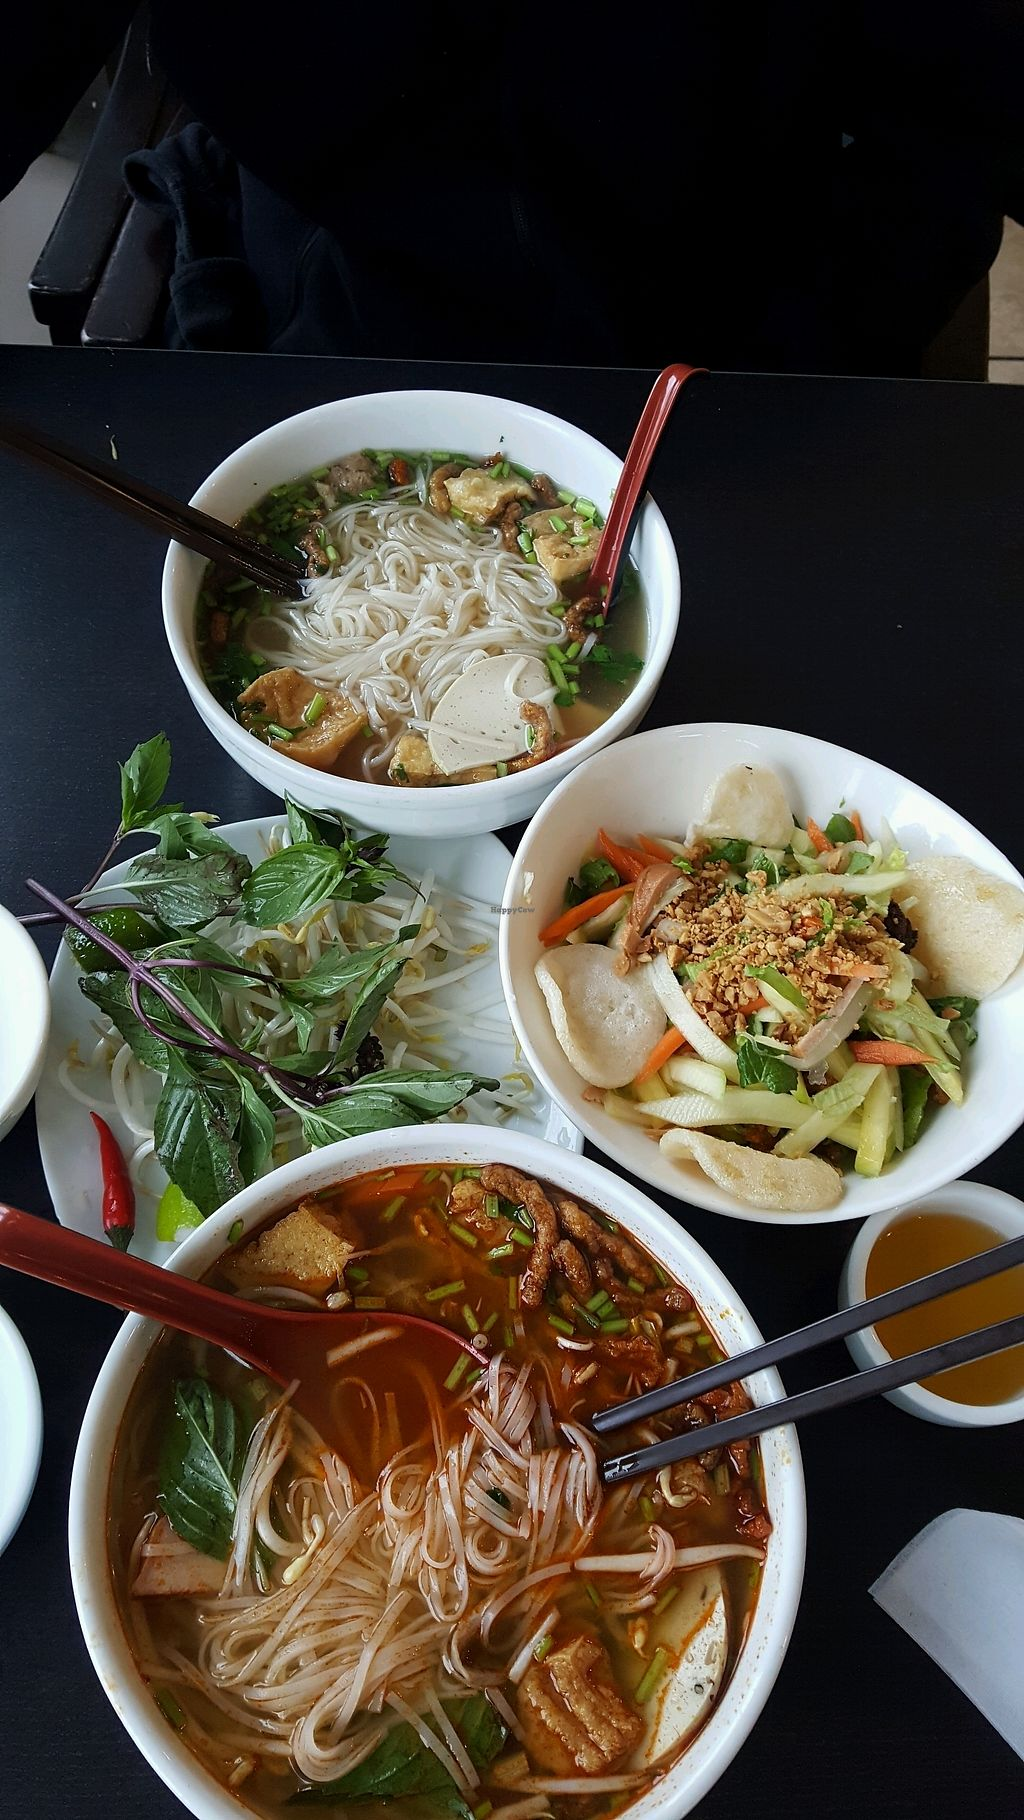 "Photo of Dai Bi Chay  by <a href=""/members/profile/PaulineHuynhOng"">PaulineHuynhOng</a> <br/>Pho and Tom Yum and Mango salad <br/> January 29, 2018  - <a href='/contact/abuse/image/84600/352418'>Report</a>"